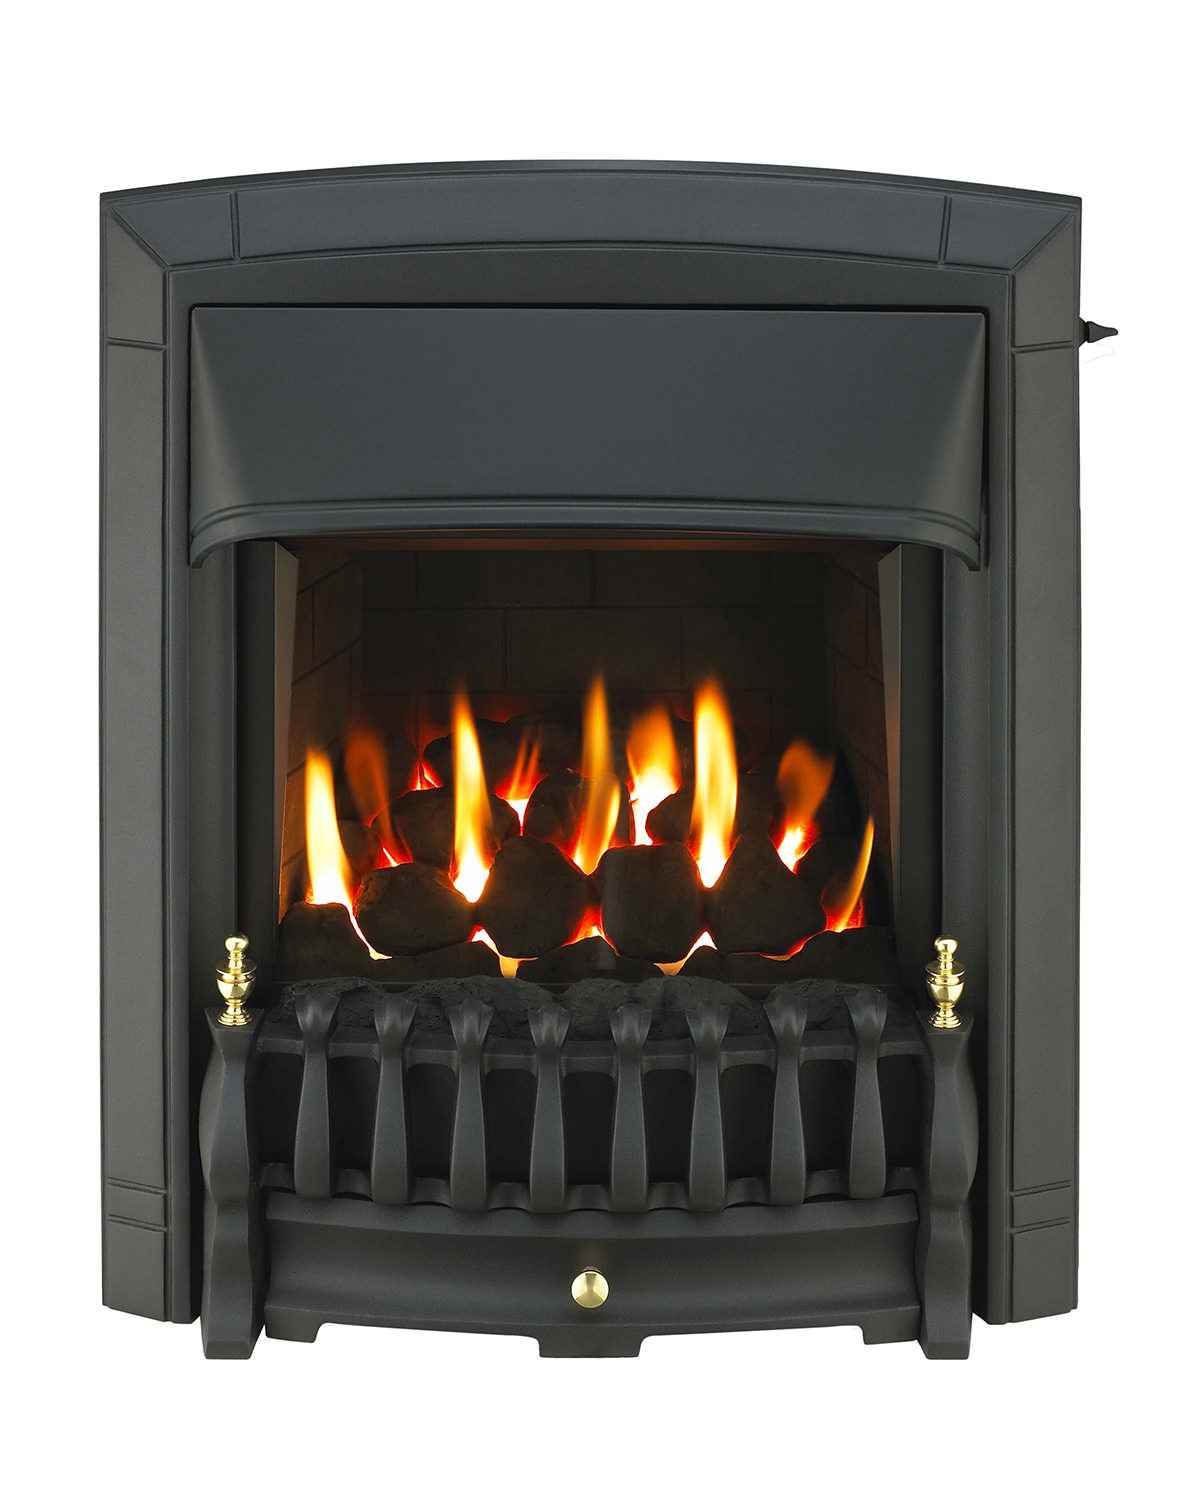 Valor Dream Homeflame Full Depth Gas Fire 576121